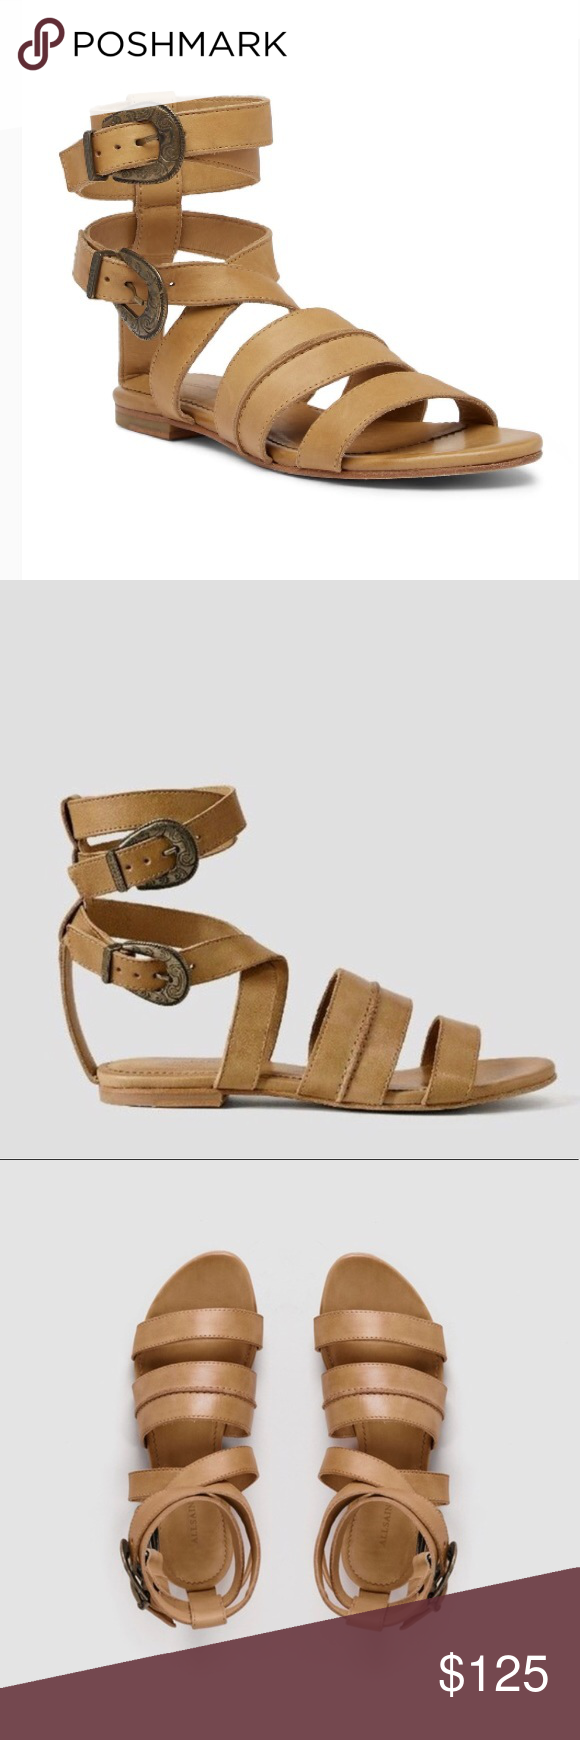 4b727acb0406 All Saints Gladiator Dace Tan Sandals Shoes 7 AllSaints All Saints Dace gladiator  sandals. Great condition. Double wrap around the ankle with metal buckles.